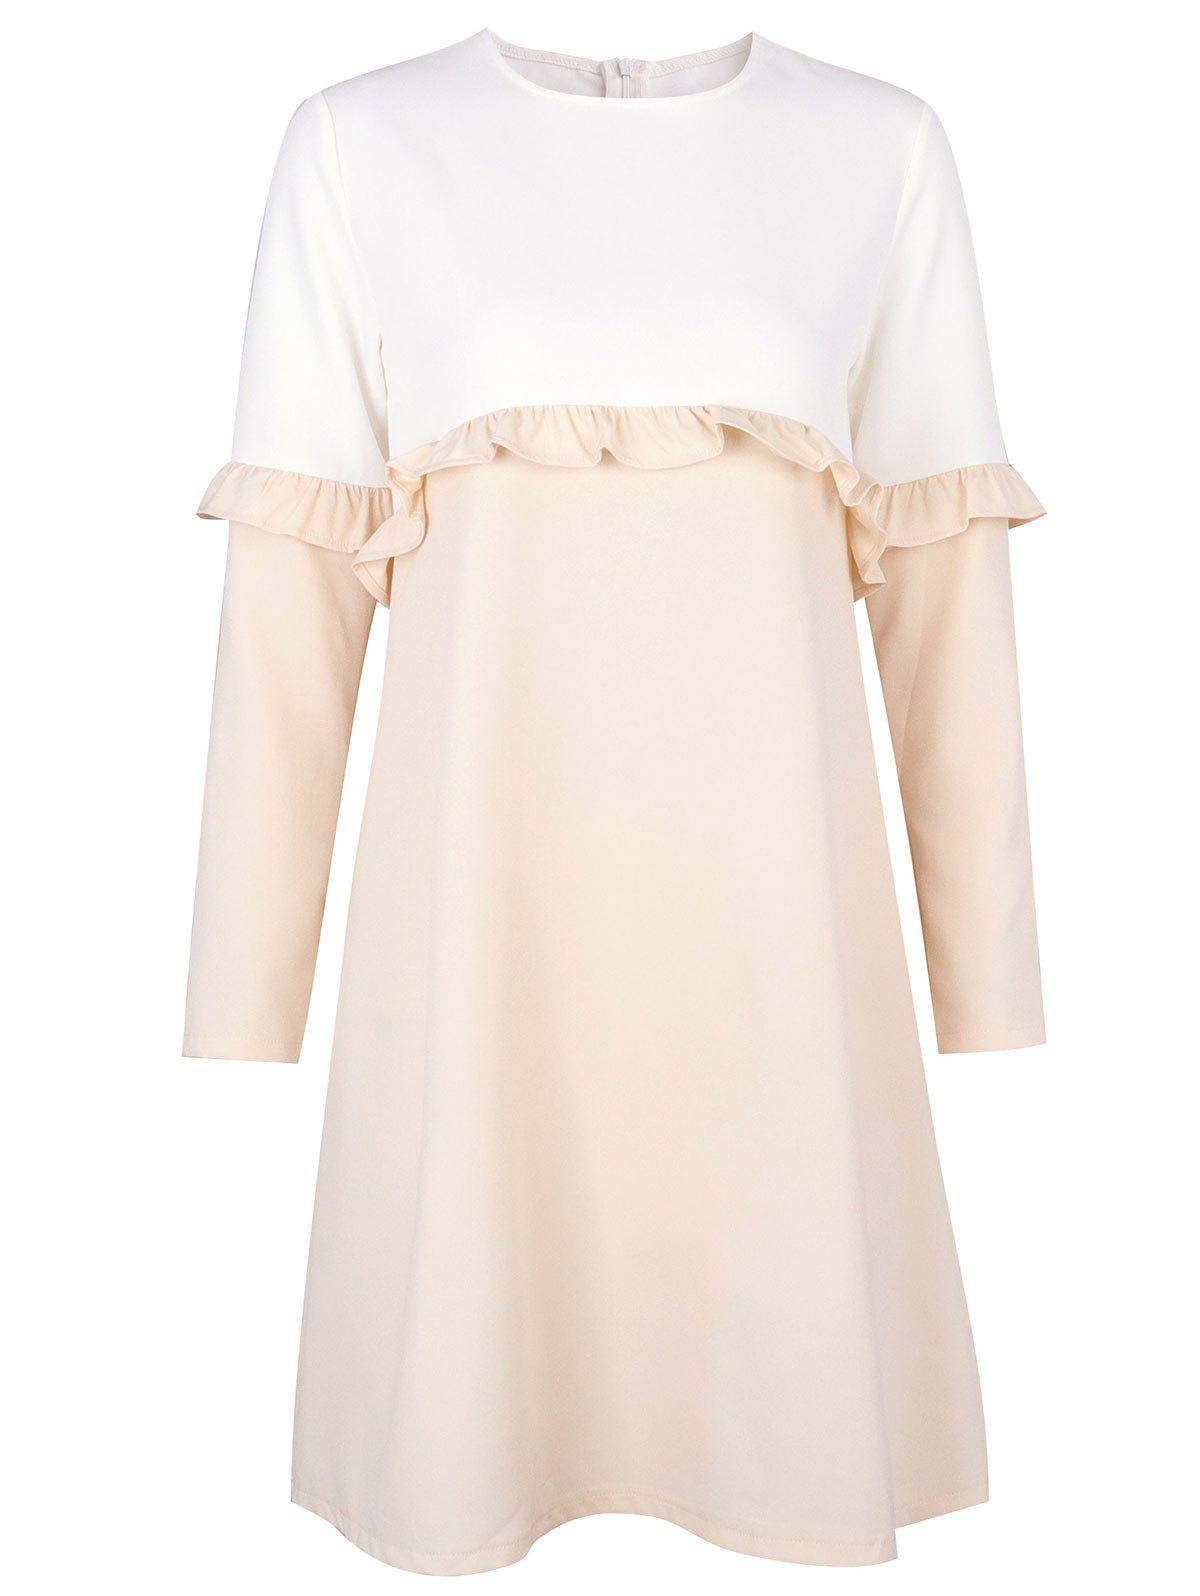 Flounce Two Tone Shift Dress - LIGHT KHAKI L